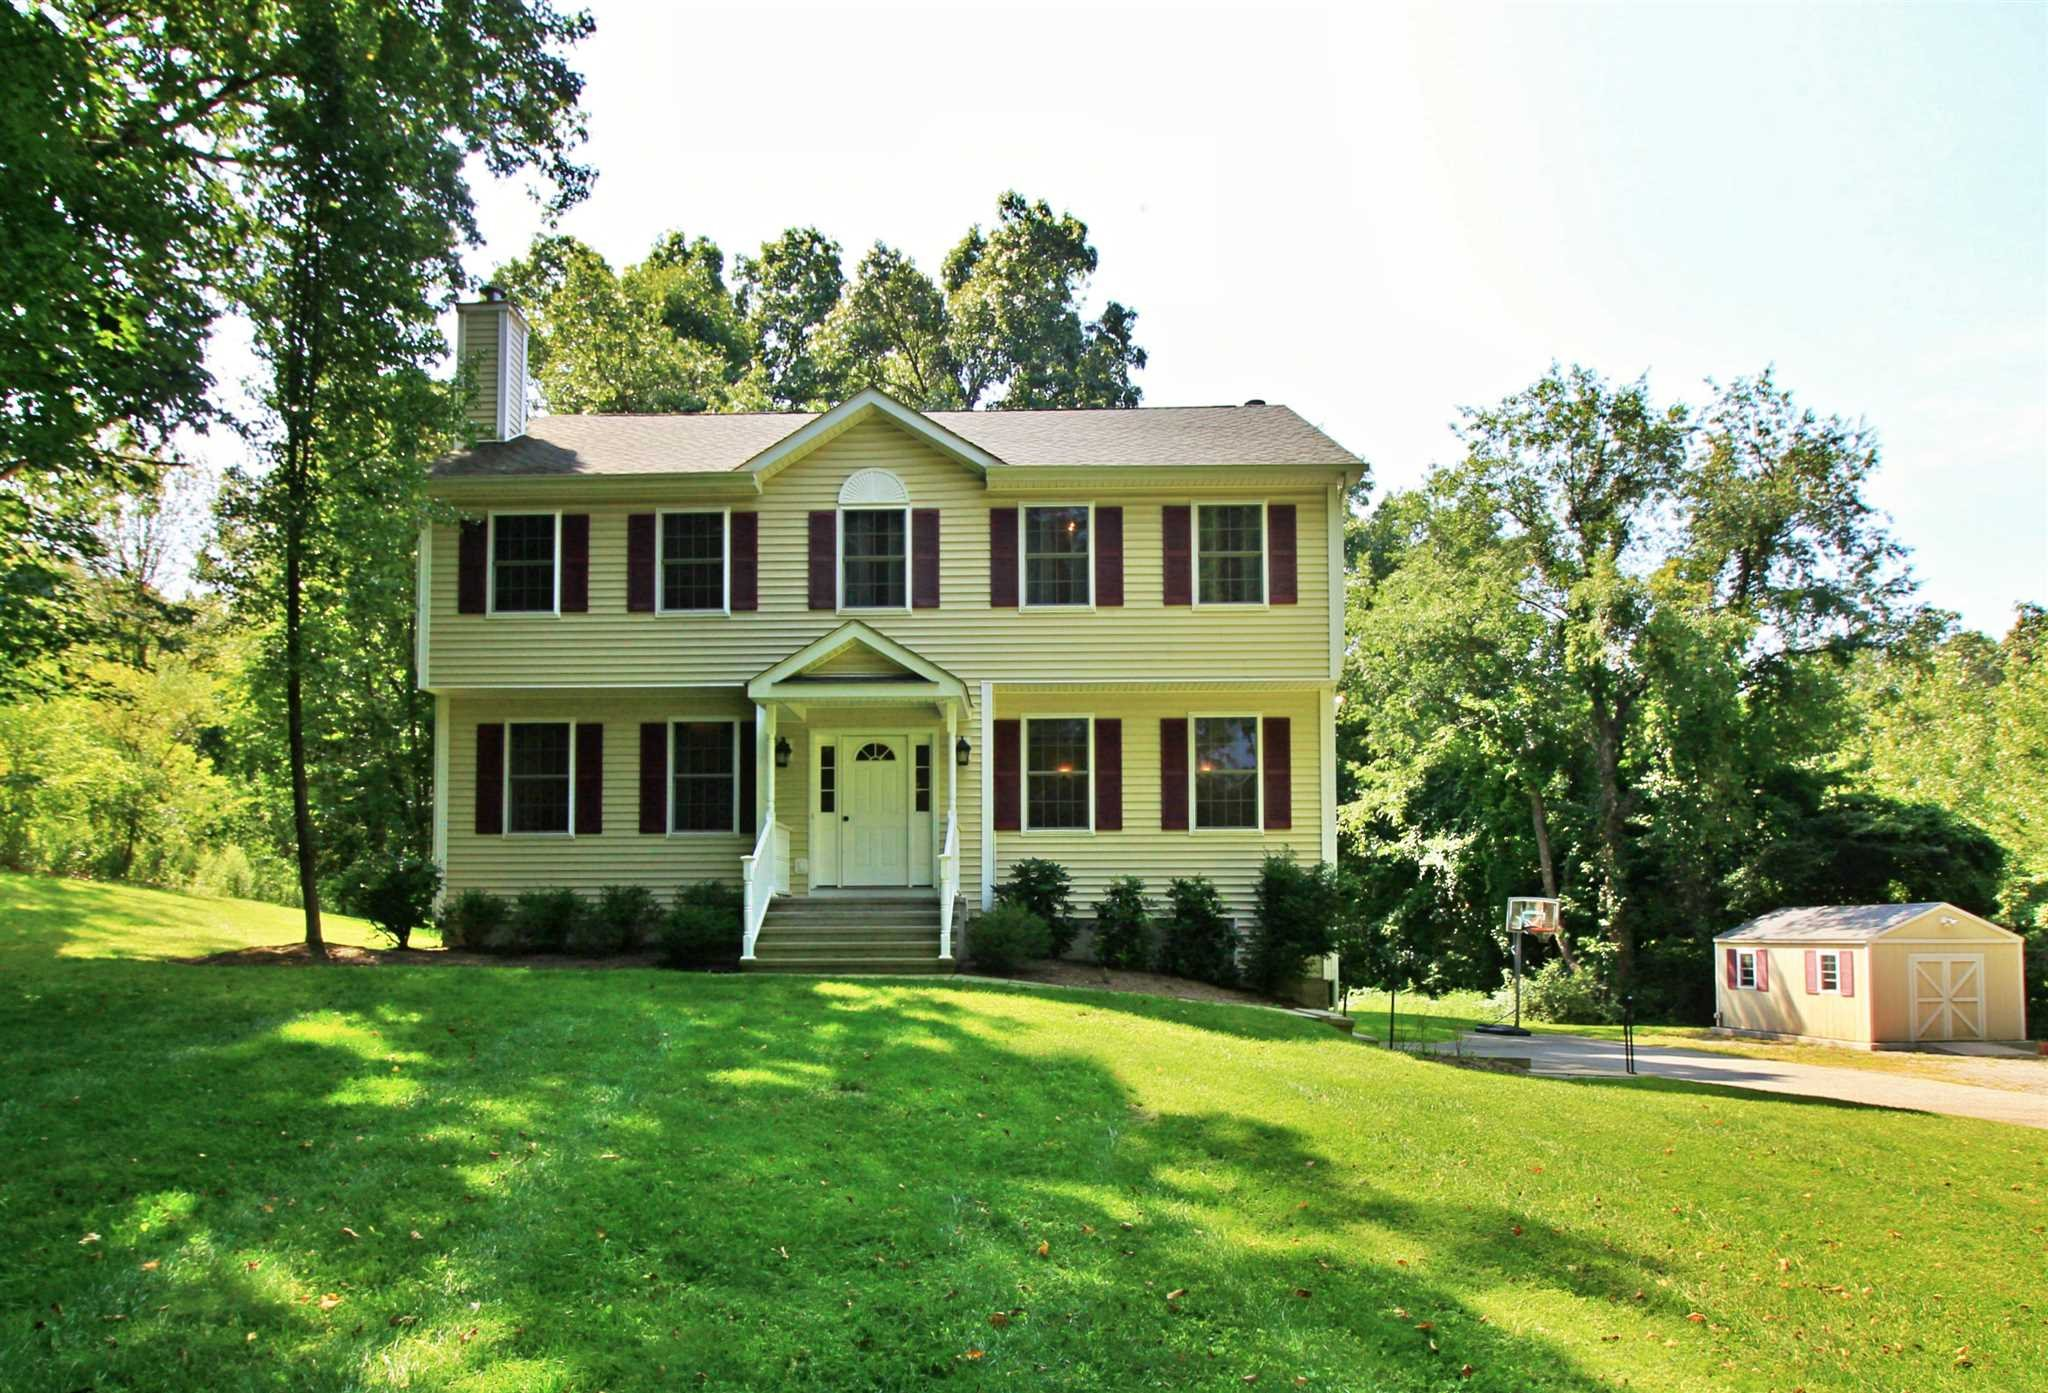 Single Family Home for Sale at 152 EAST DUNCAN HILL ROAD 152 EAST DUNCAN HILL ROAD Dover Plains, New York 12522 United States